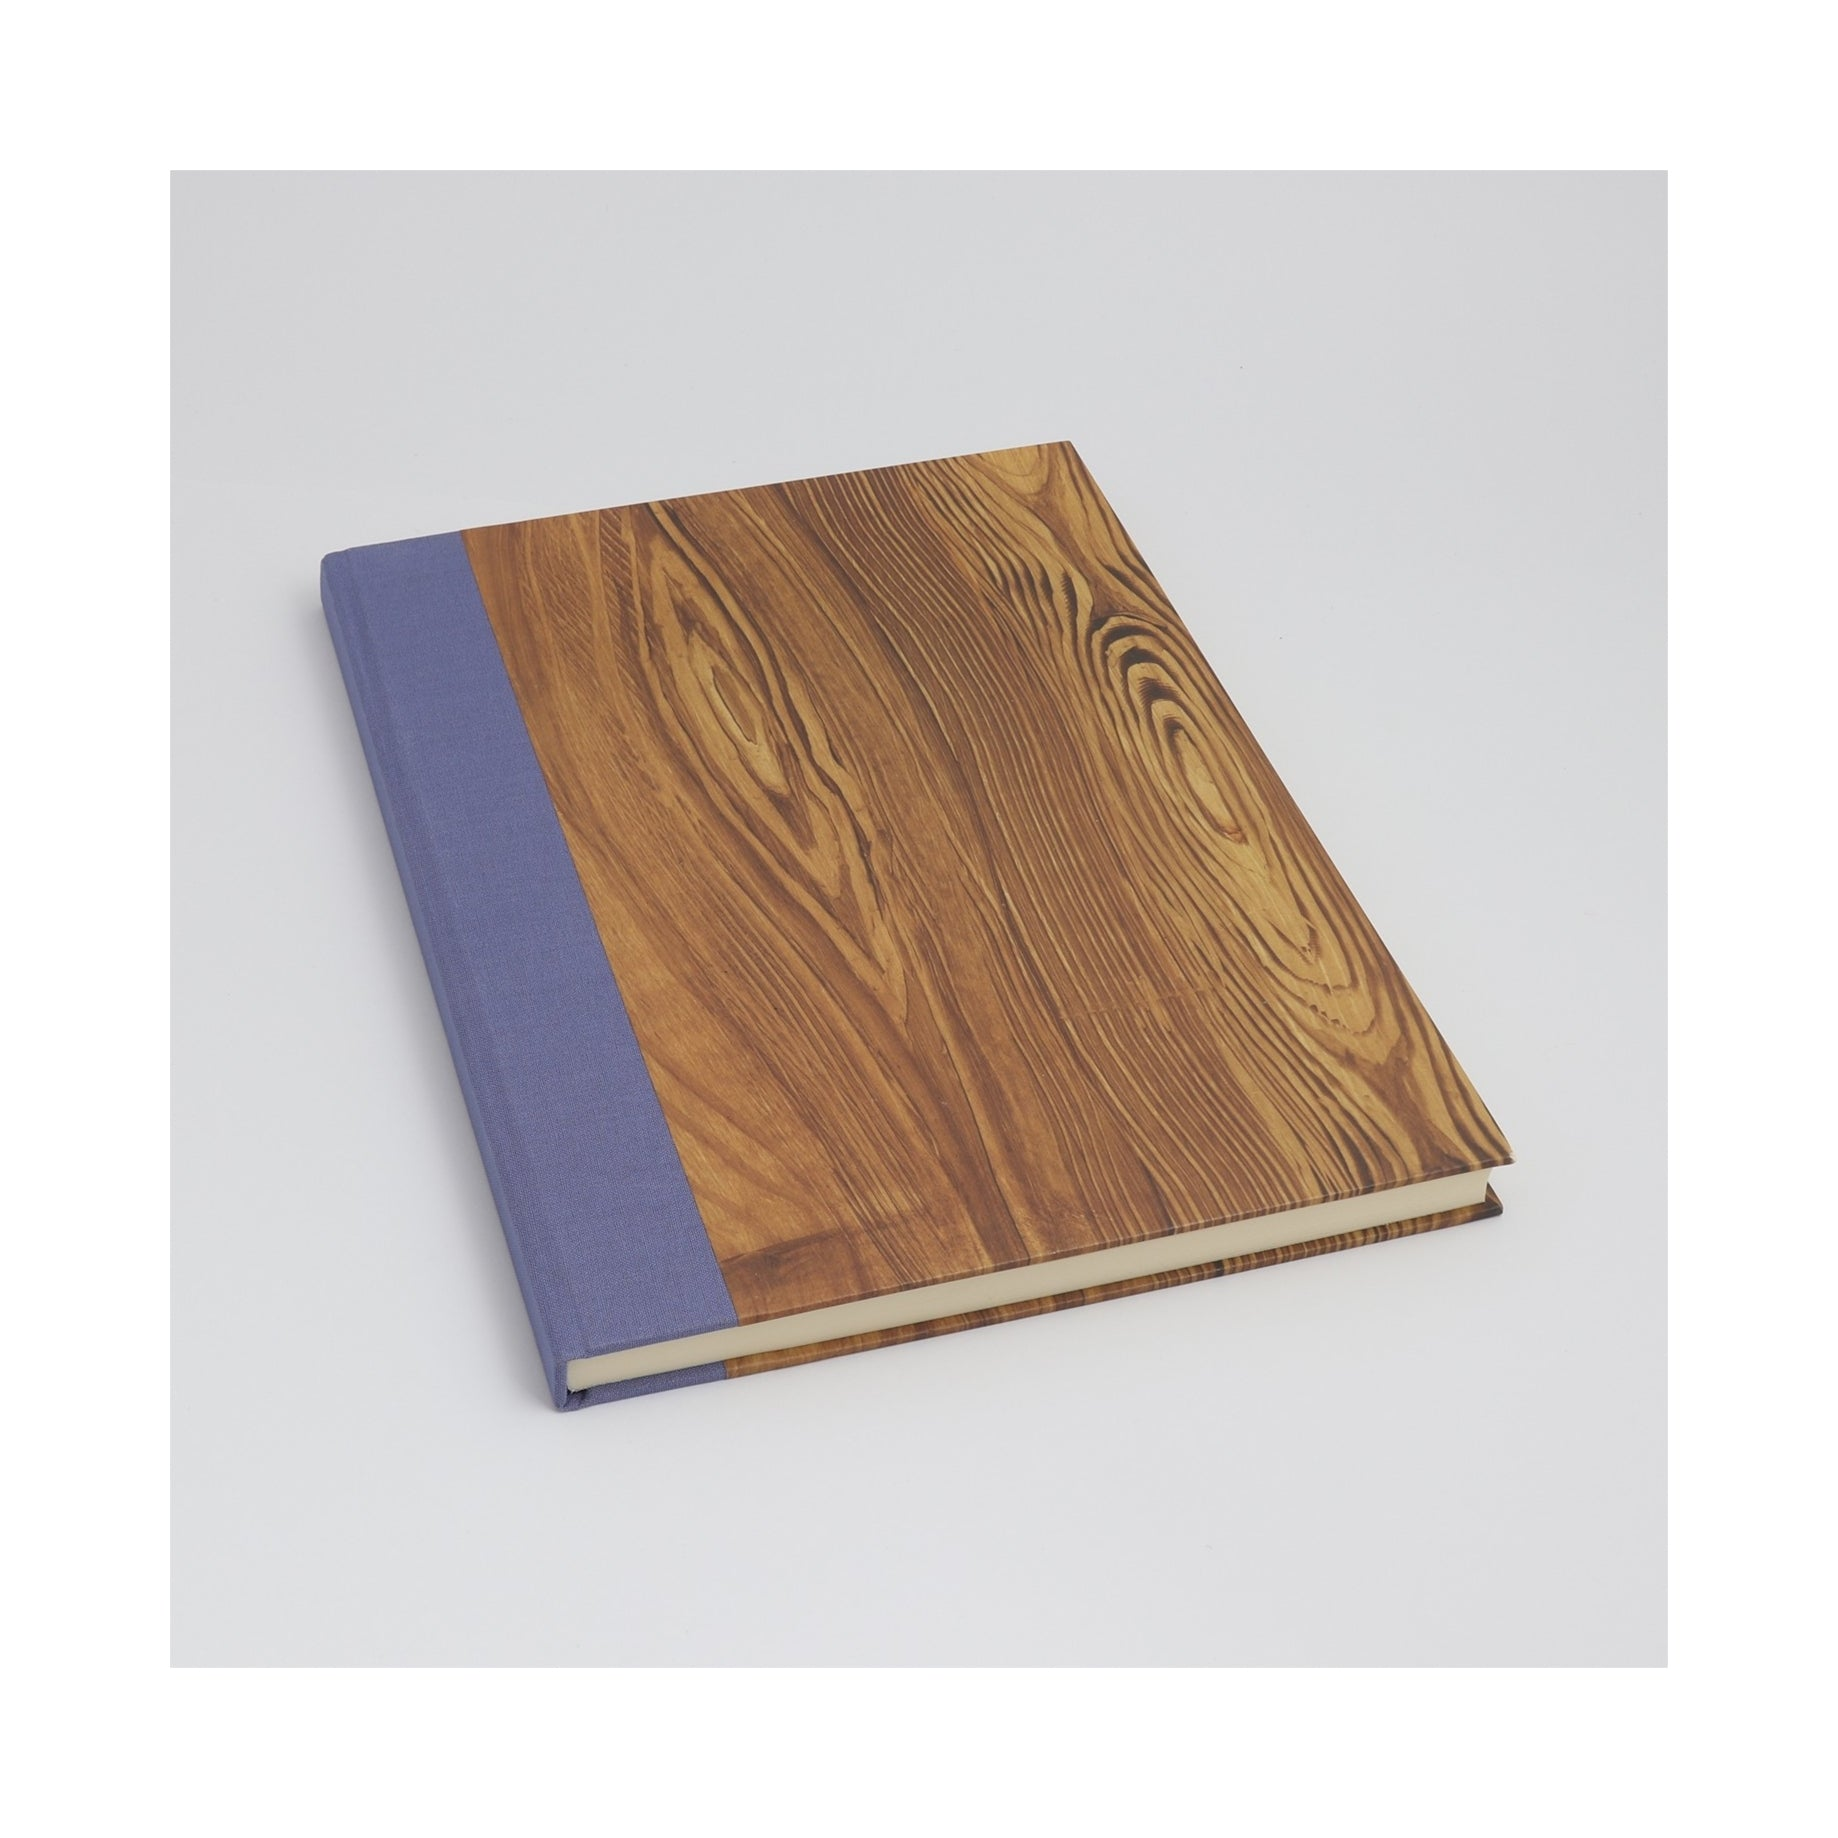 A5 Notebook - Pitch Pine